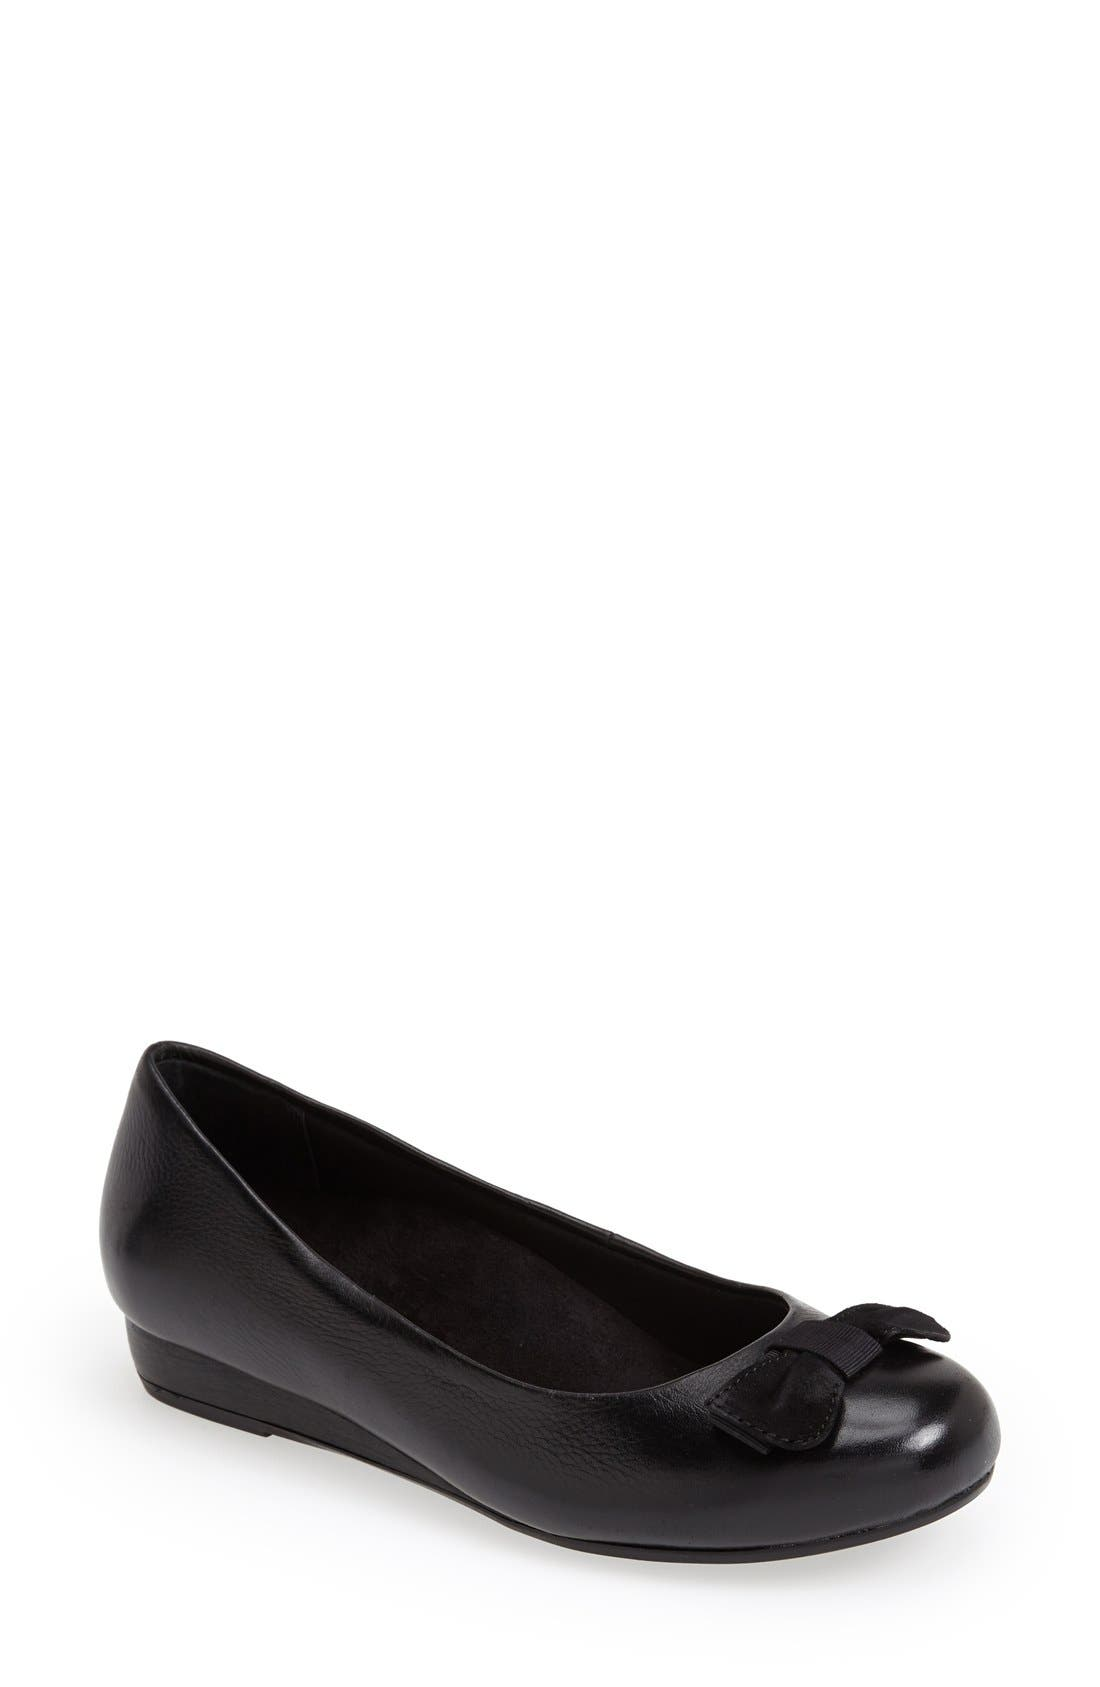 'Lydia' Leather Wedge Pump,                             Main thumbnail 1, color,                             001